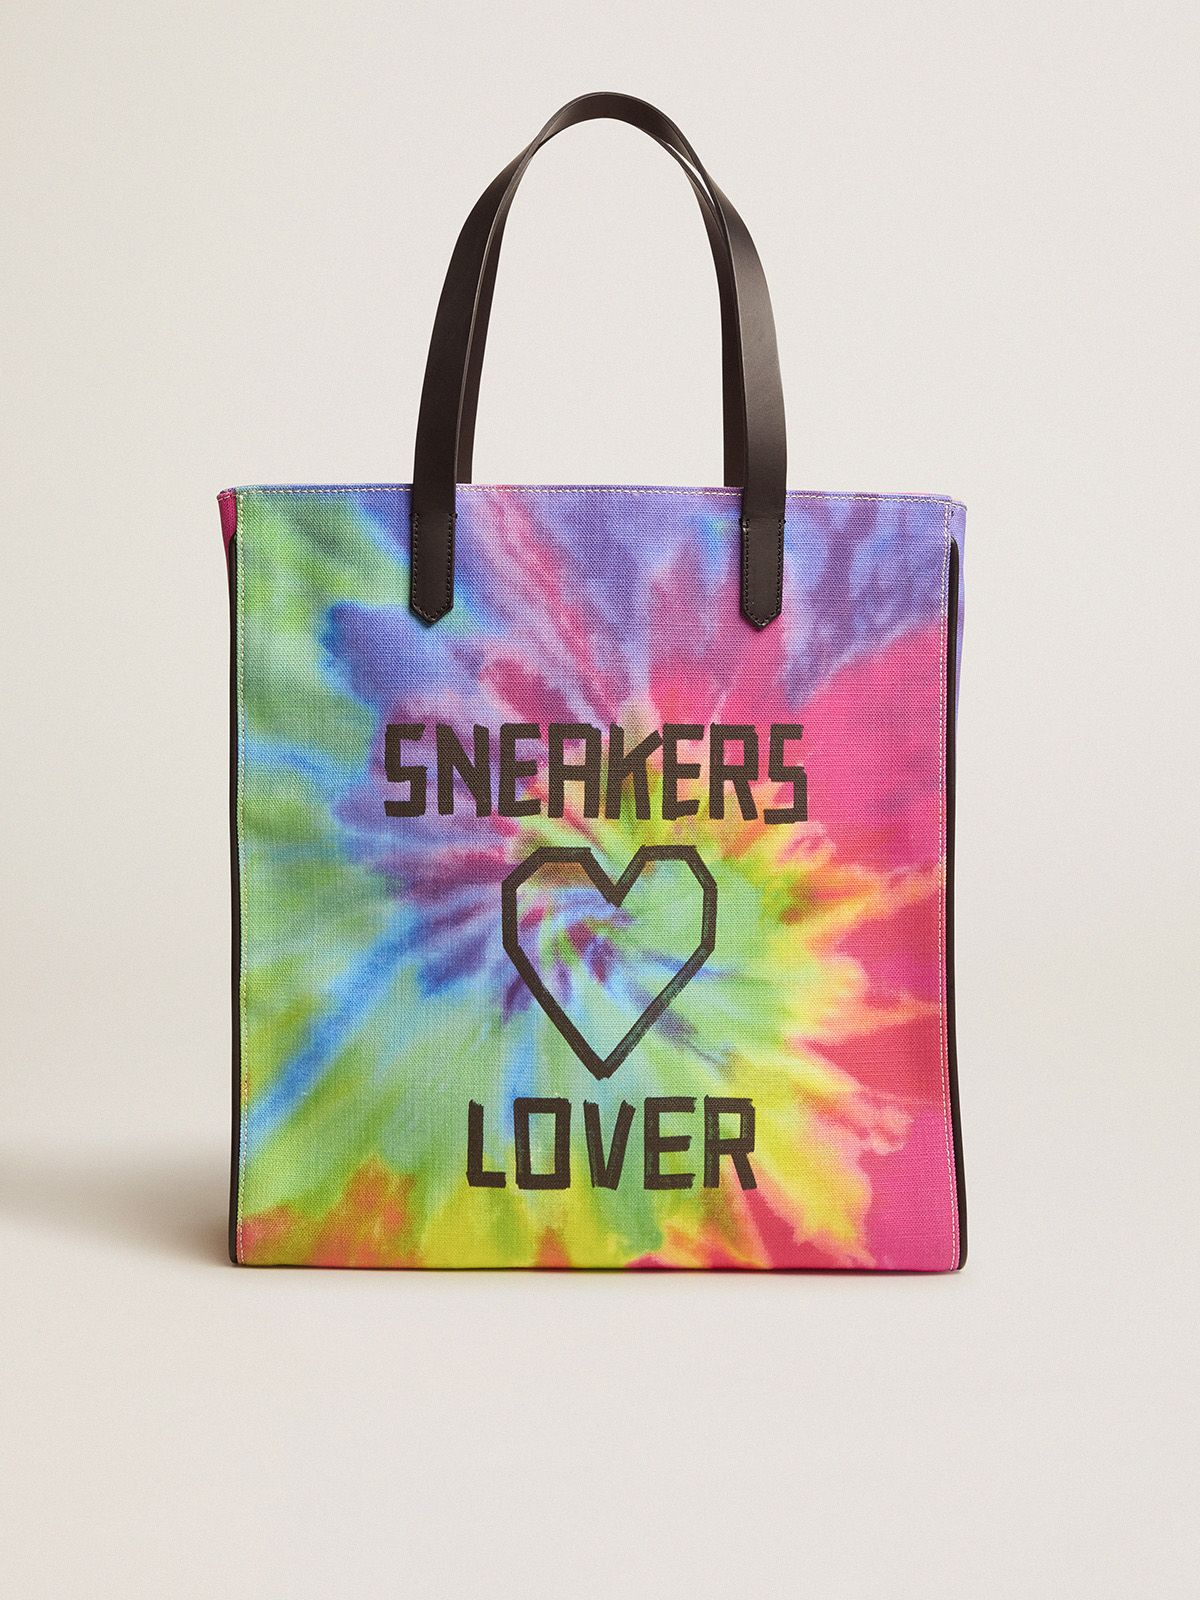 Golden Goose - California North-South tie-dye bag with Sneakers Lover print in